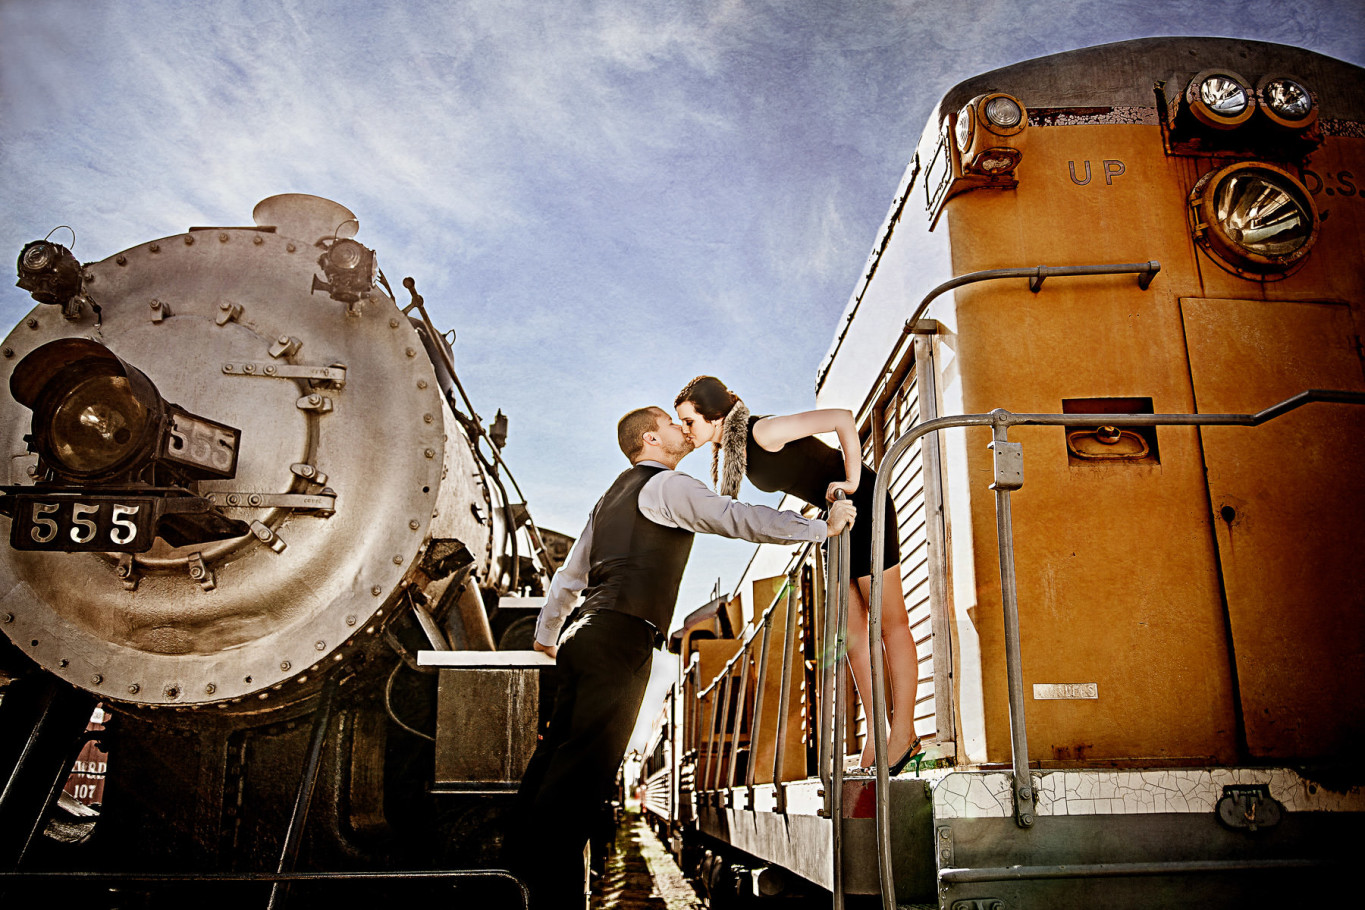 galveston engagement portrait session at train museum by steve lee photography